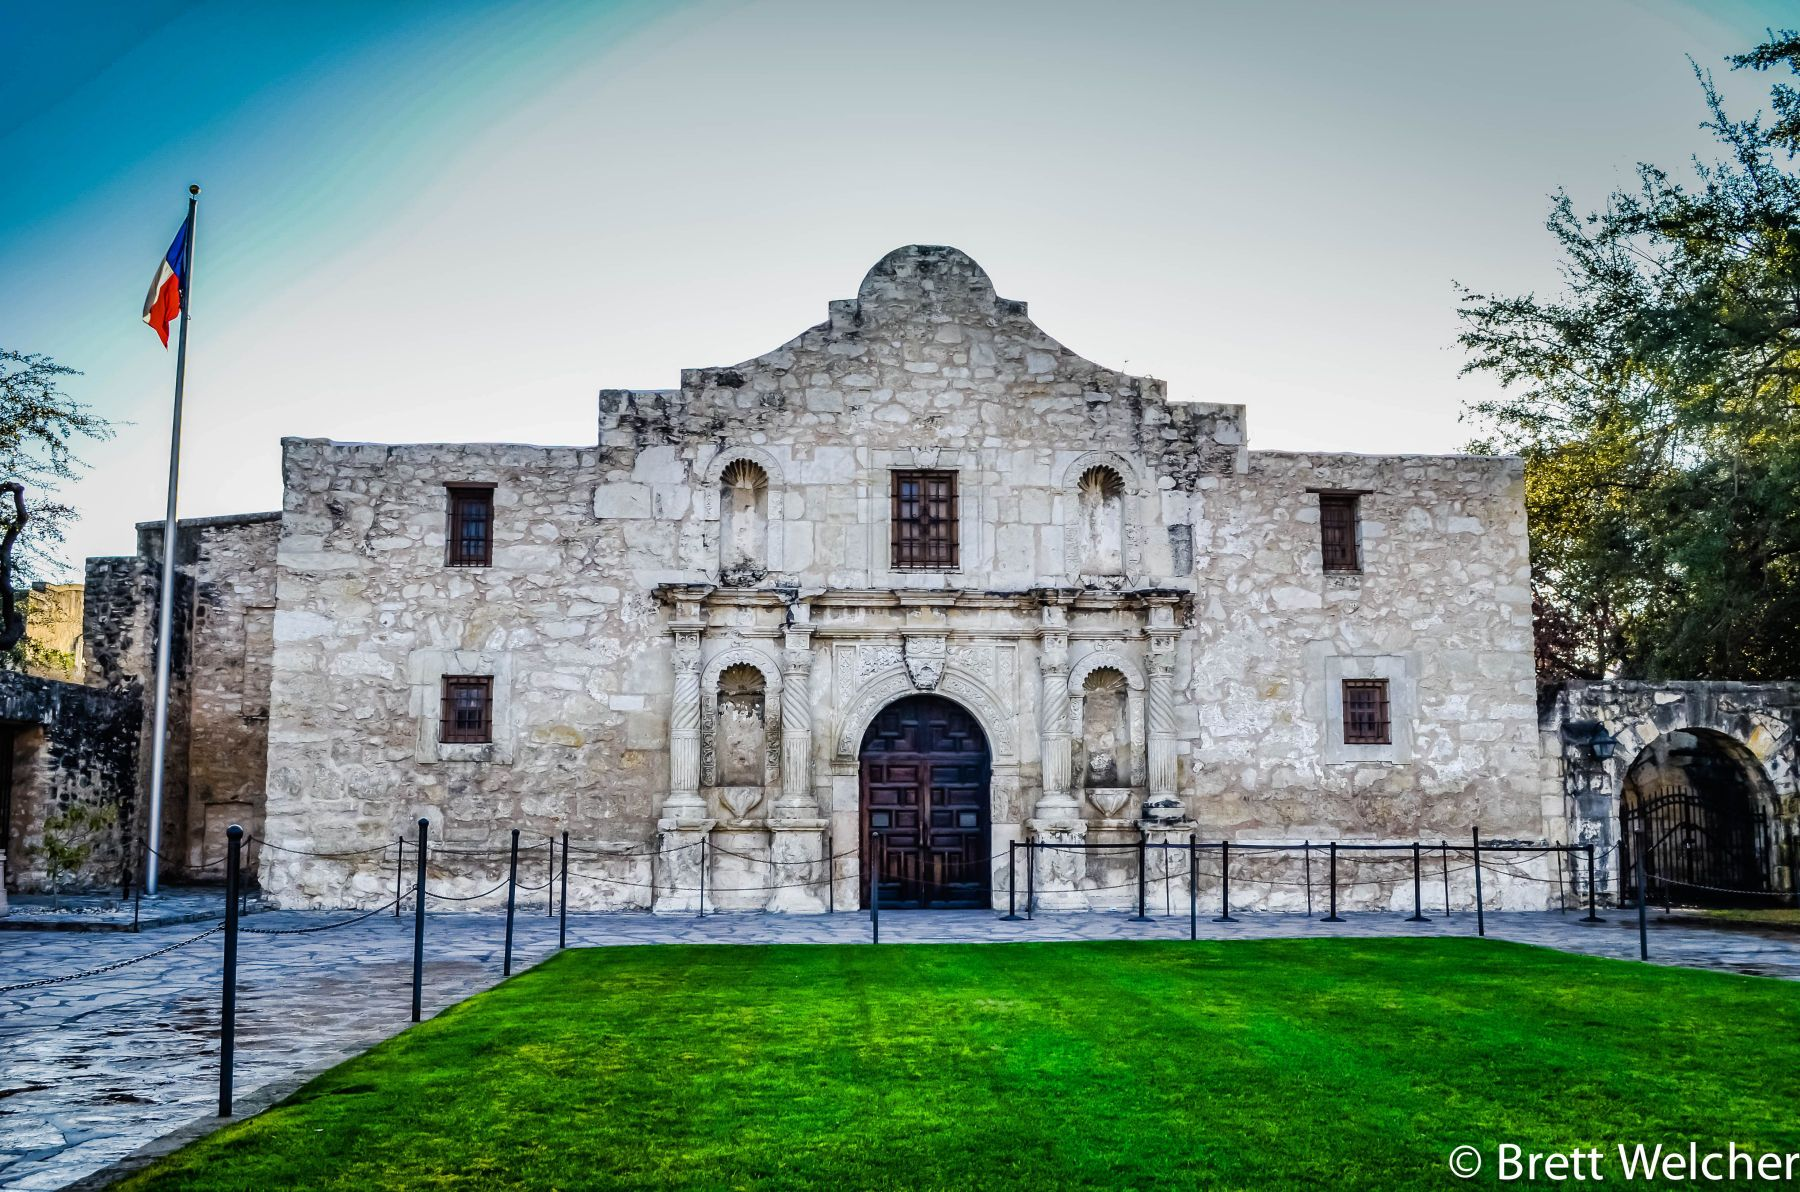 The Alamo is an 18th-century mission church located in San Antonio, Texas. It is most well known for the role it played during a pivotal battle in the fight for Texas' independence from Mexico.For 13 days in 1836, close to 200 Texas defenders held the Alam